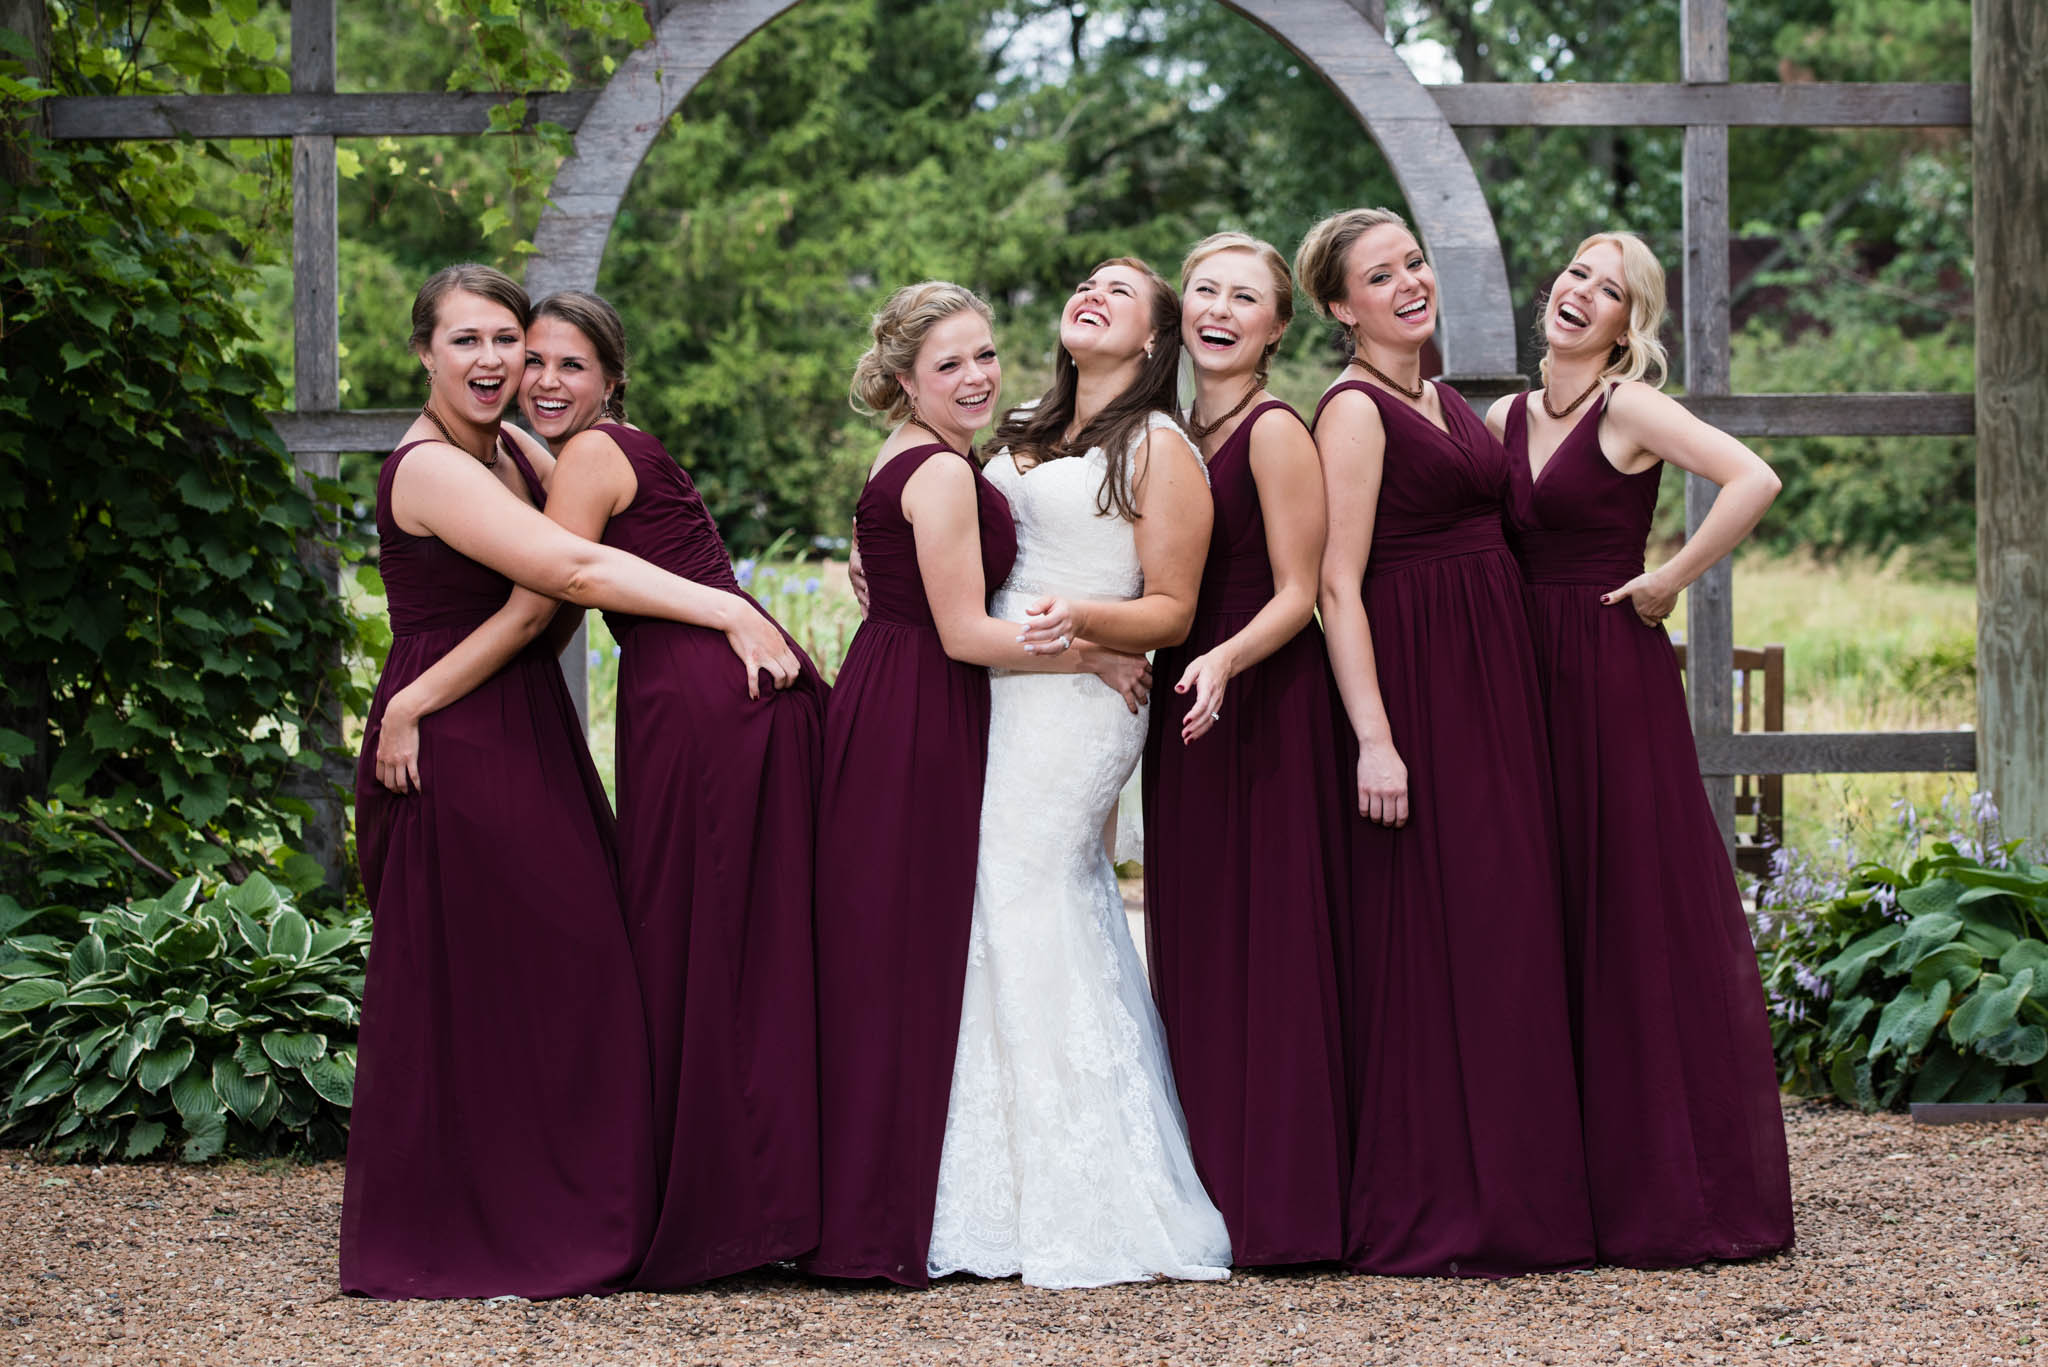 Bridesmaids portrait at Cantigny Park